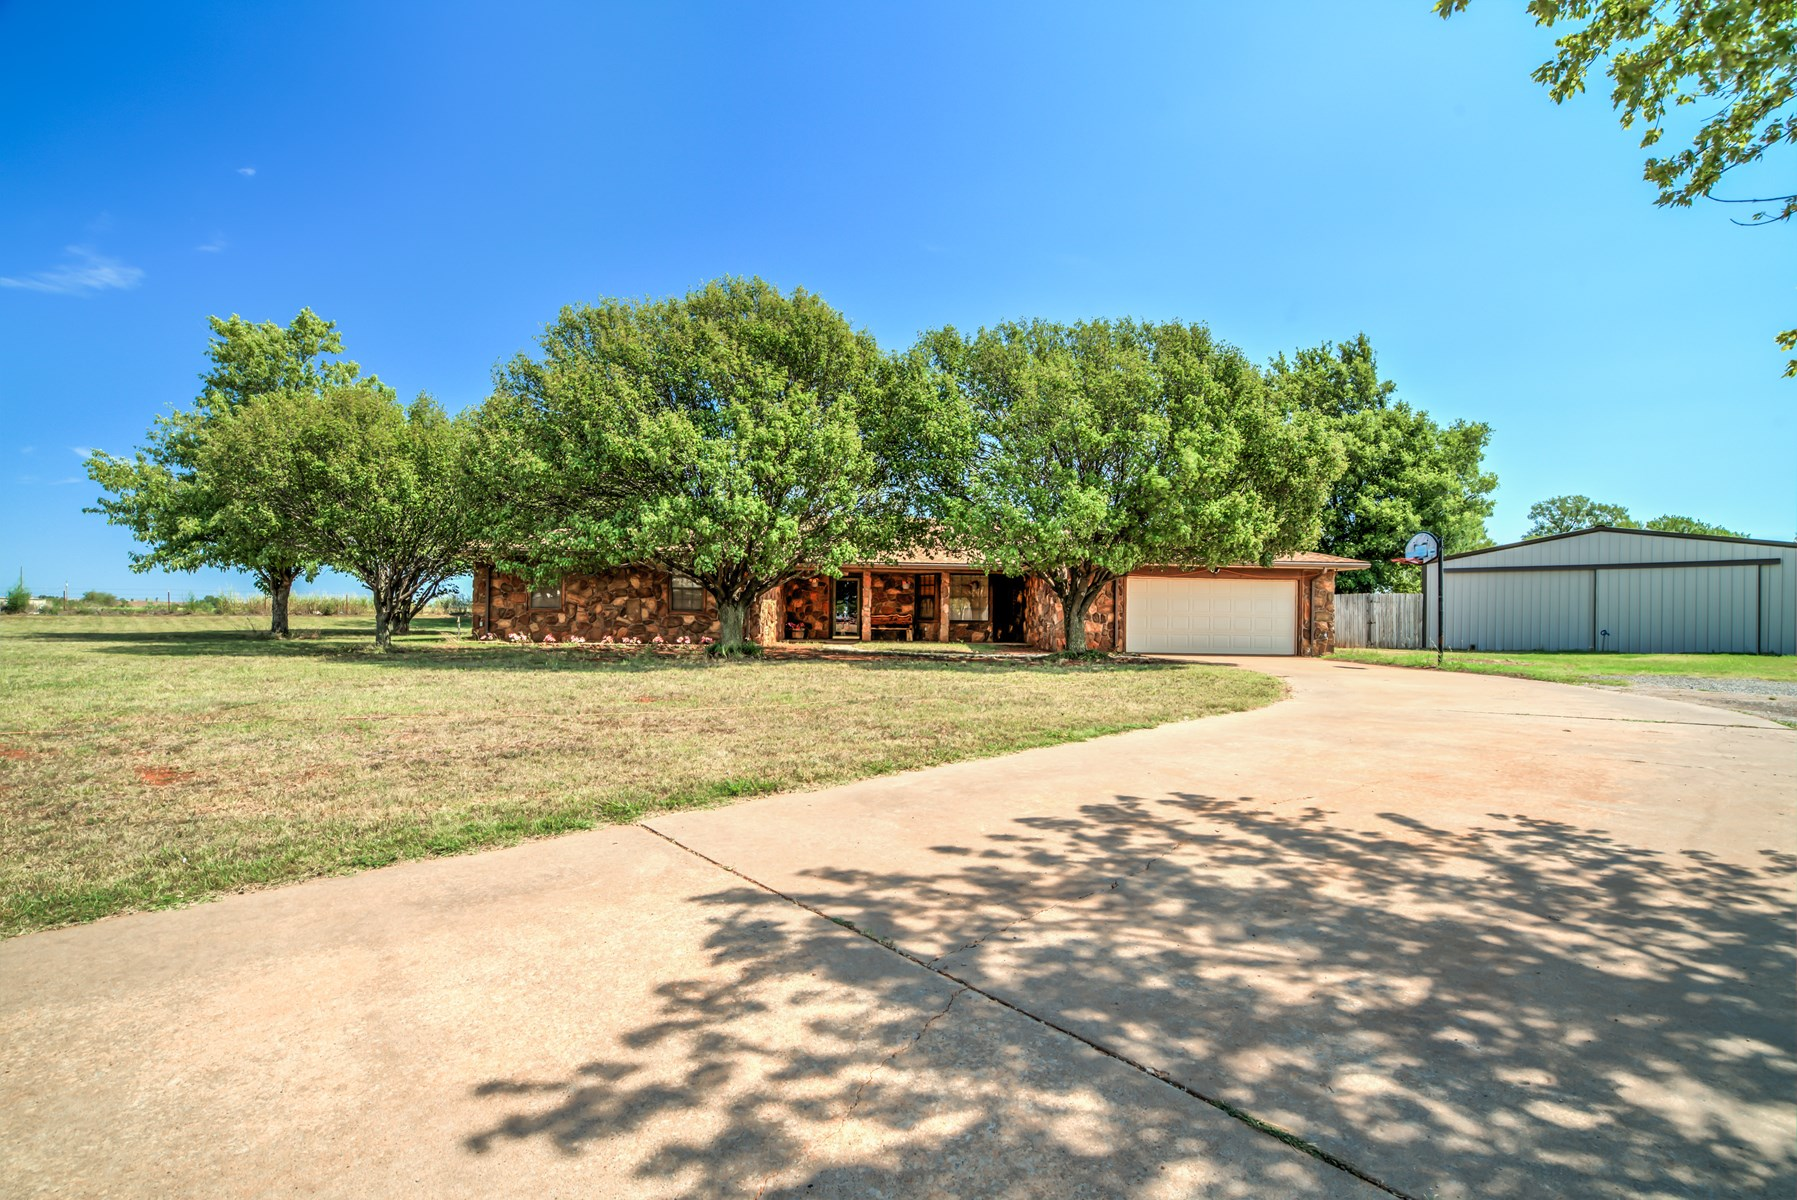 Western Oklahoma Country Home with Equine Facility for Sale